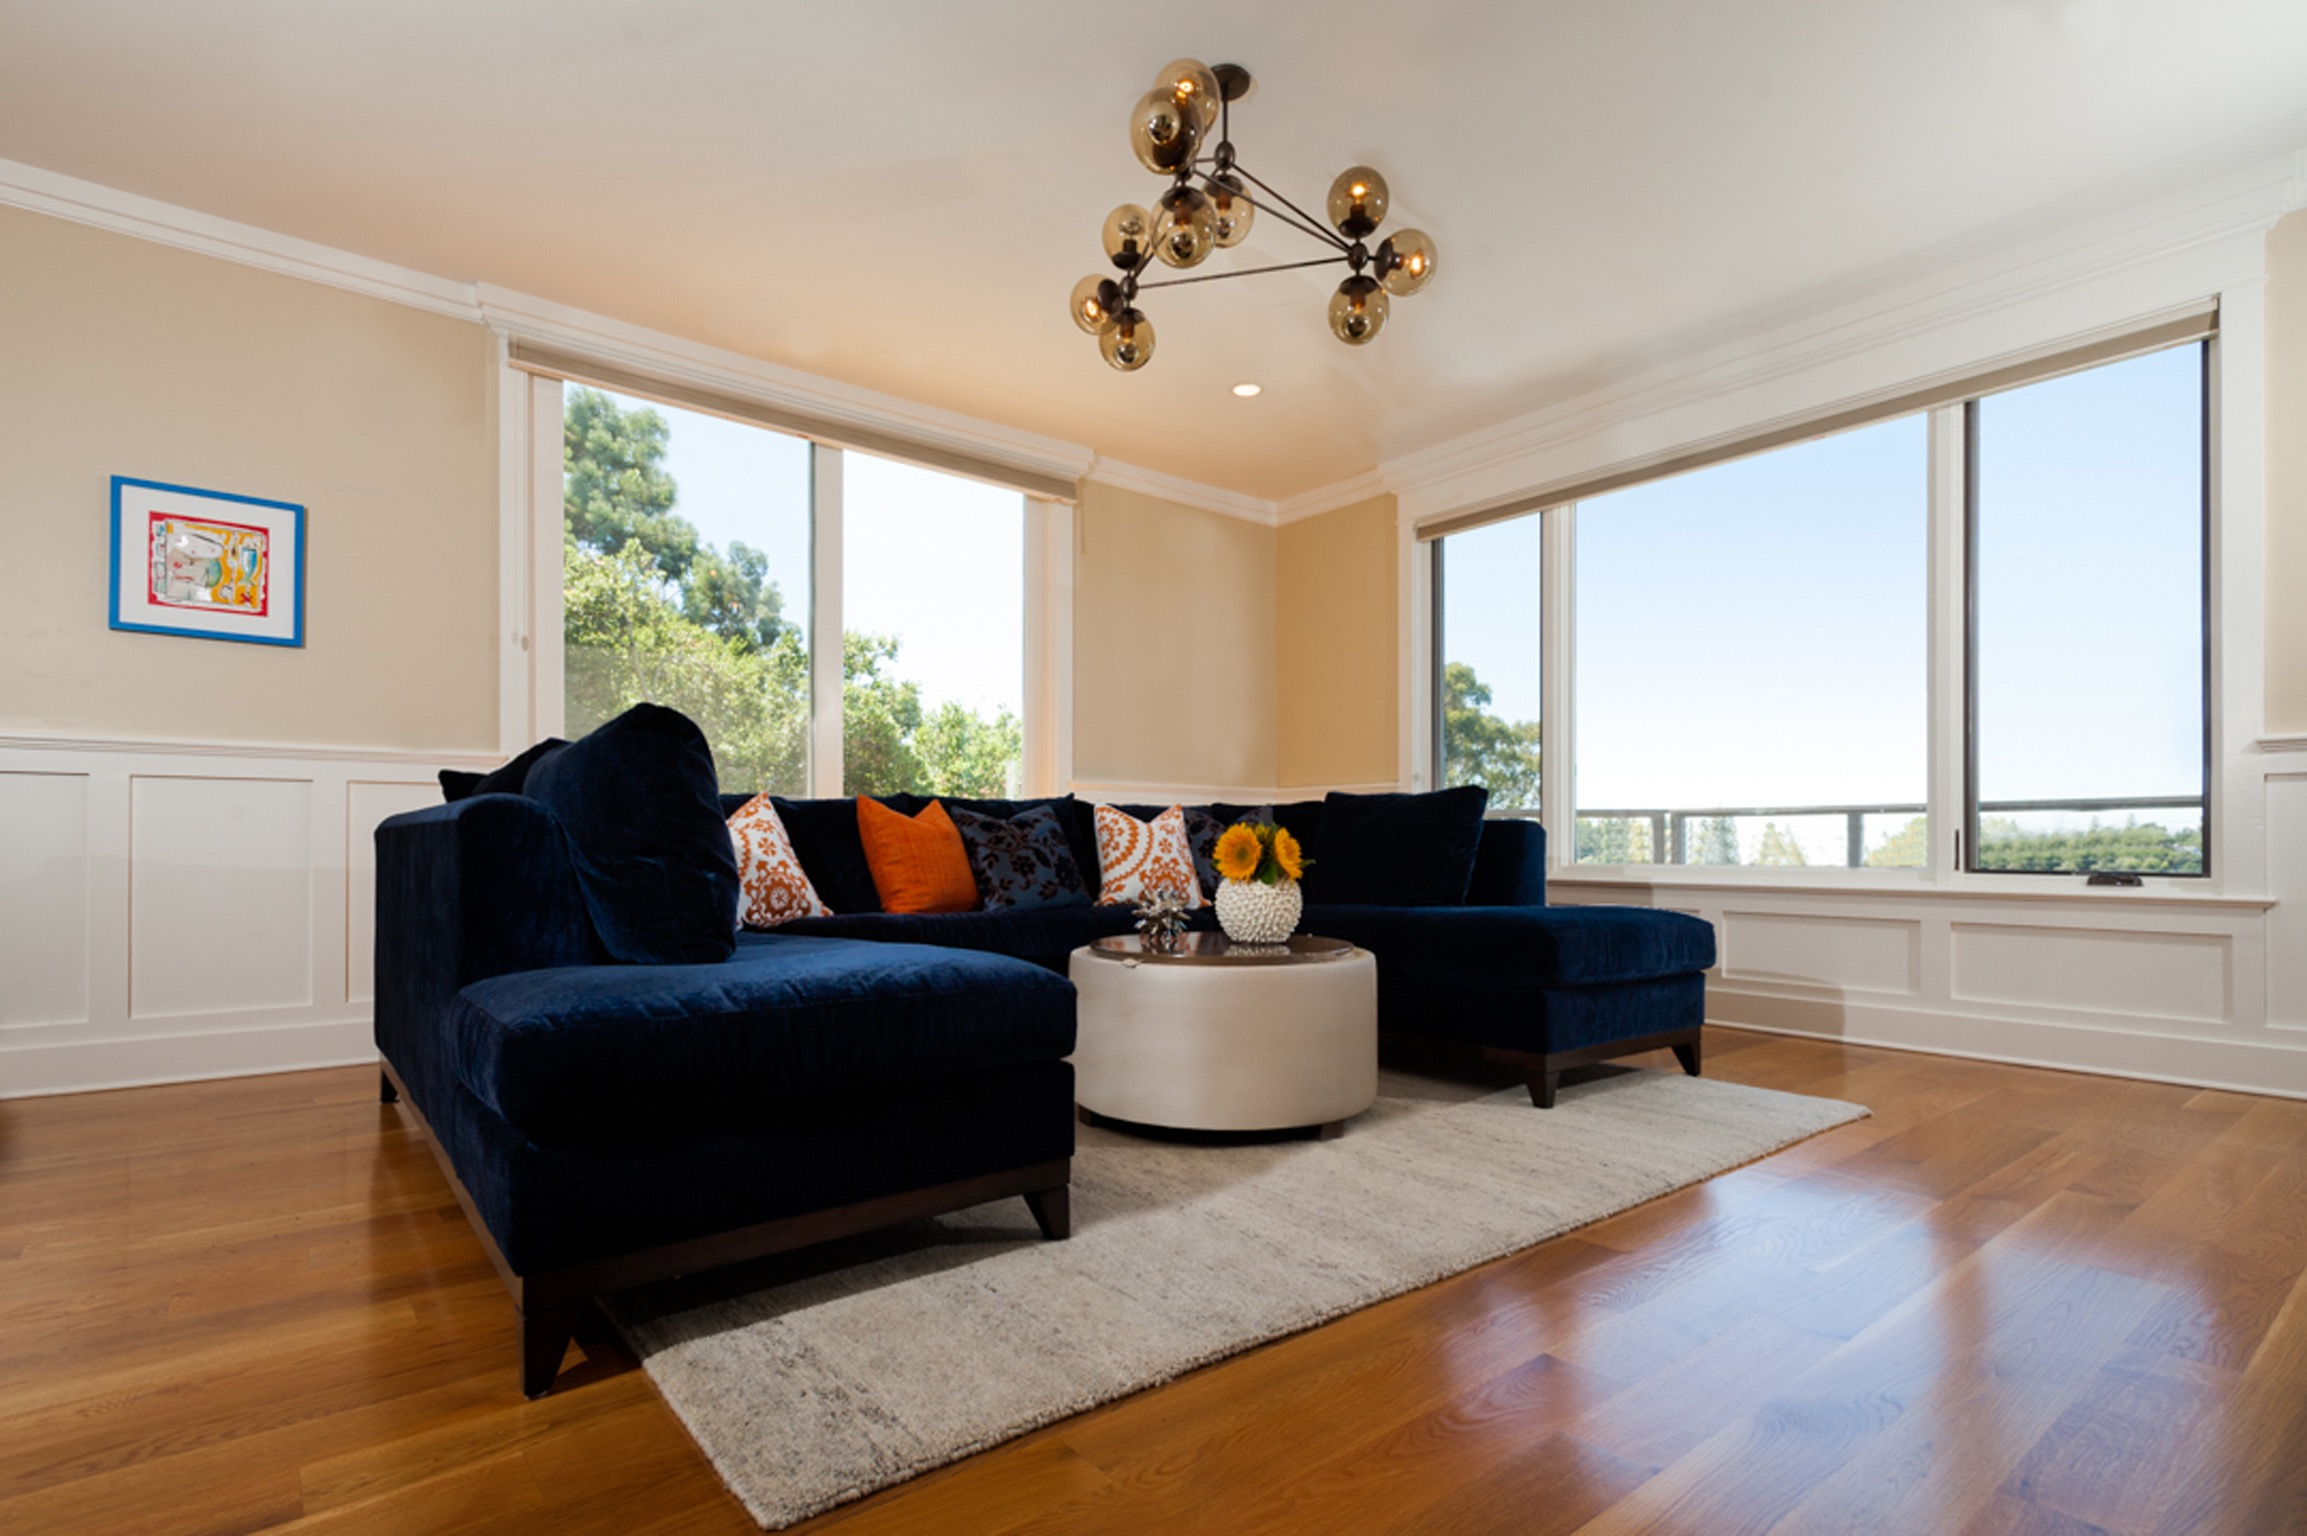 Dark Navy Sofa For Open Space Living Room (View 2 of 25)